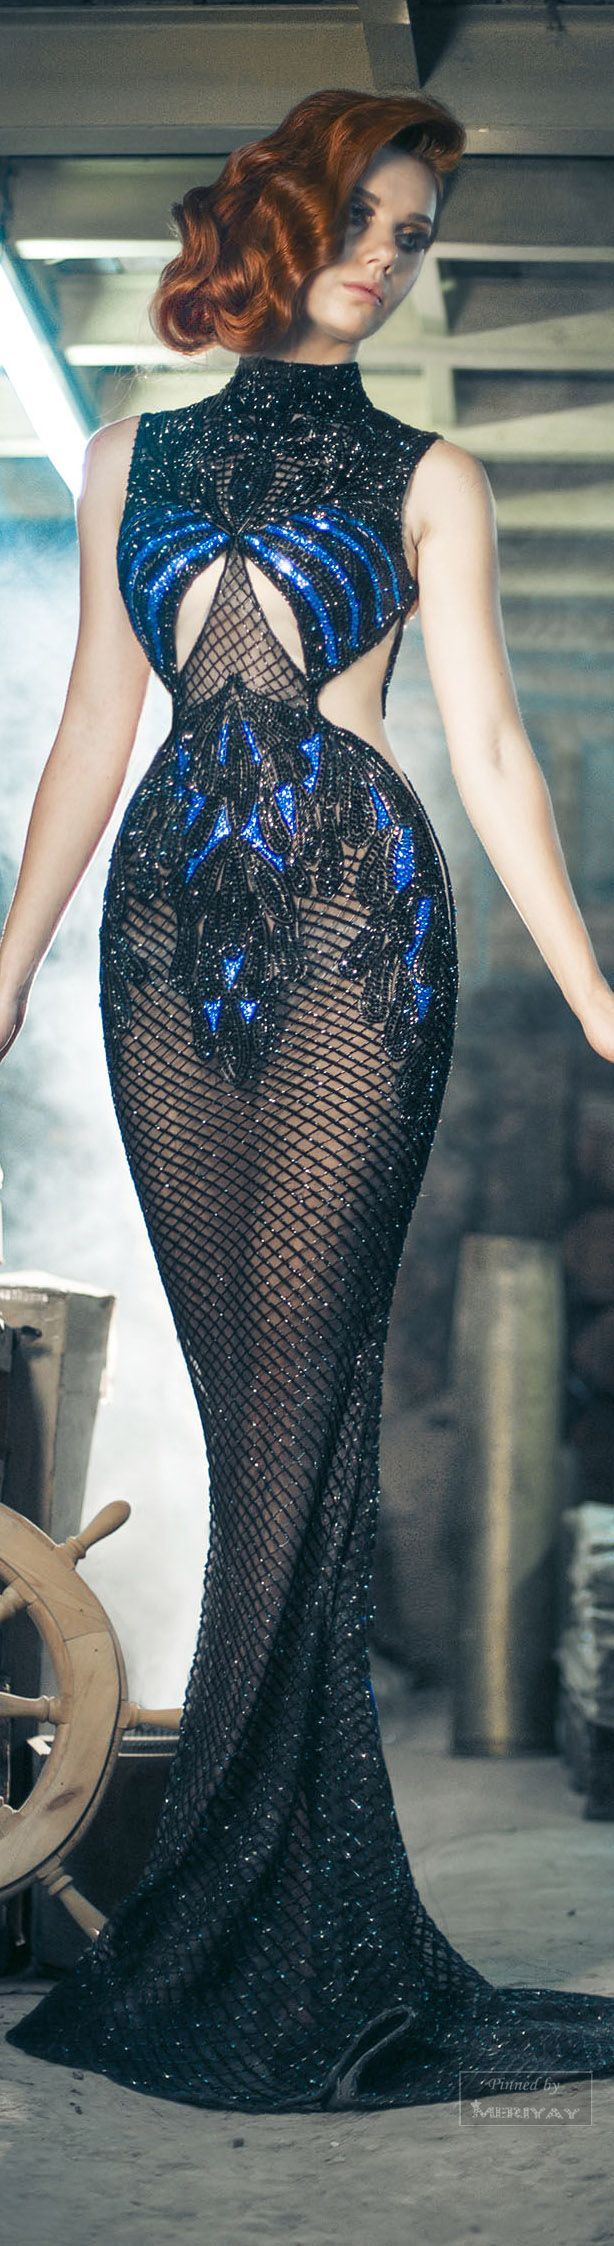 Charbel Zoe Fall-winter 2014-2015. EEEEK!! Looks like something out of science fiction. All of this designer's gowns are weird, flesh-baring things like this.